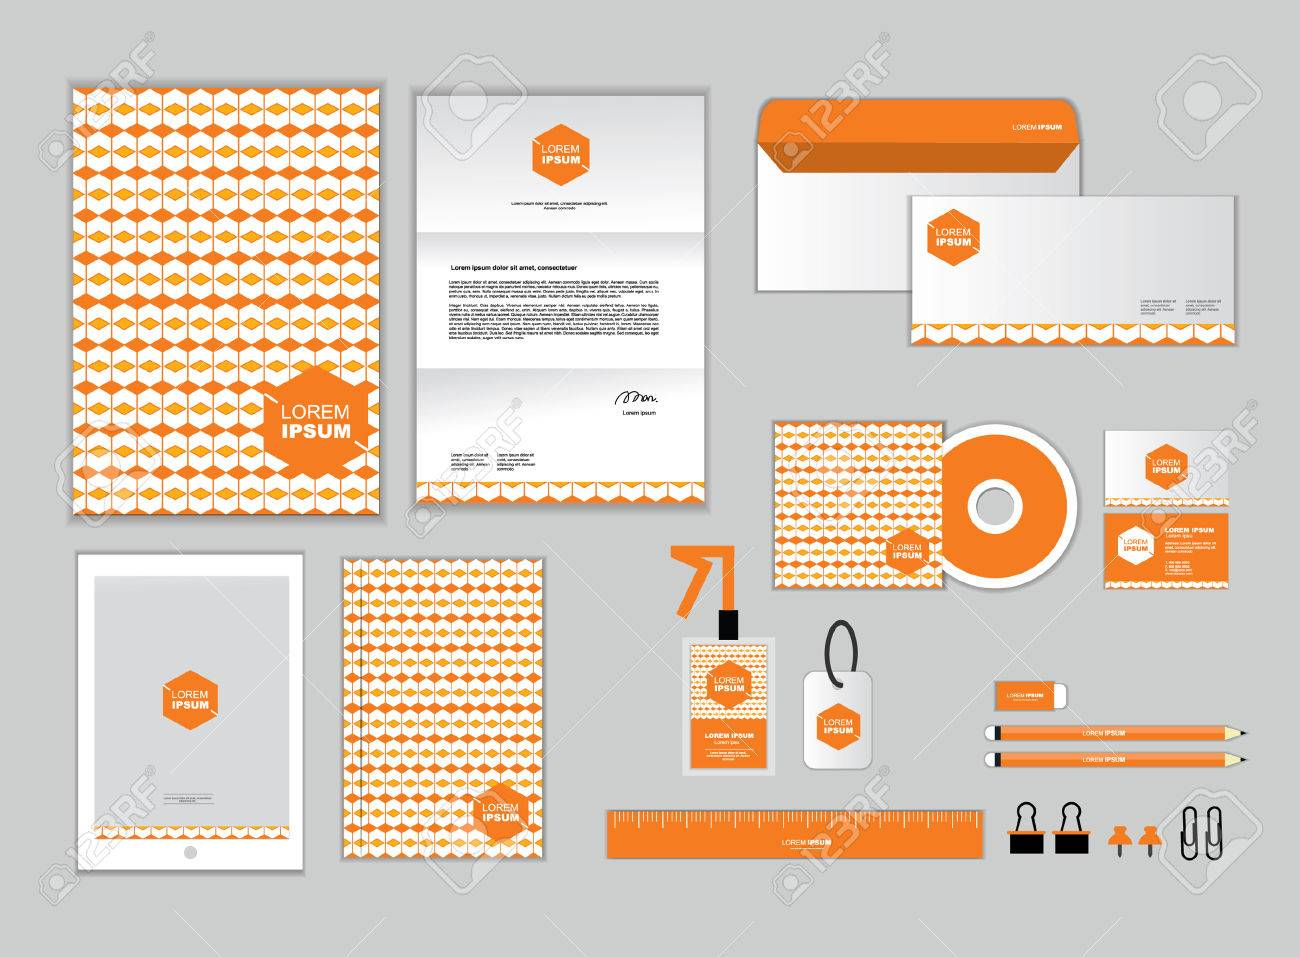 Fund Developer Cover Letter 50765978 Corporate Identity Template Includes  CD Cover Business Card Folder Ruler Envelope